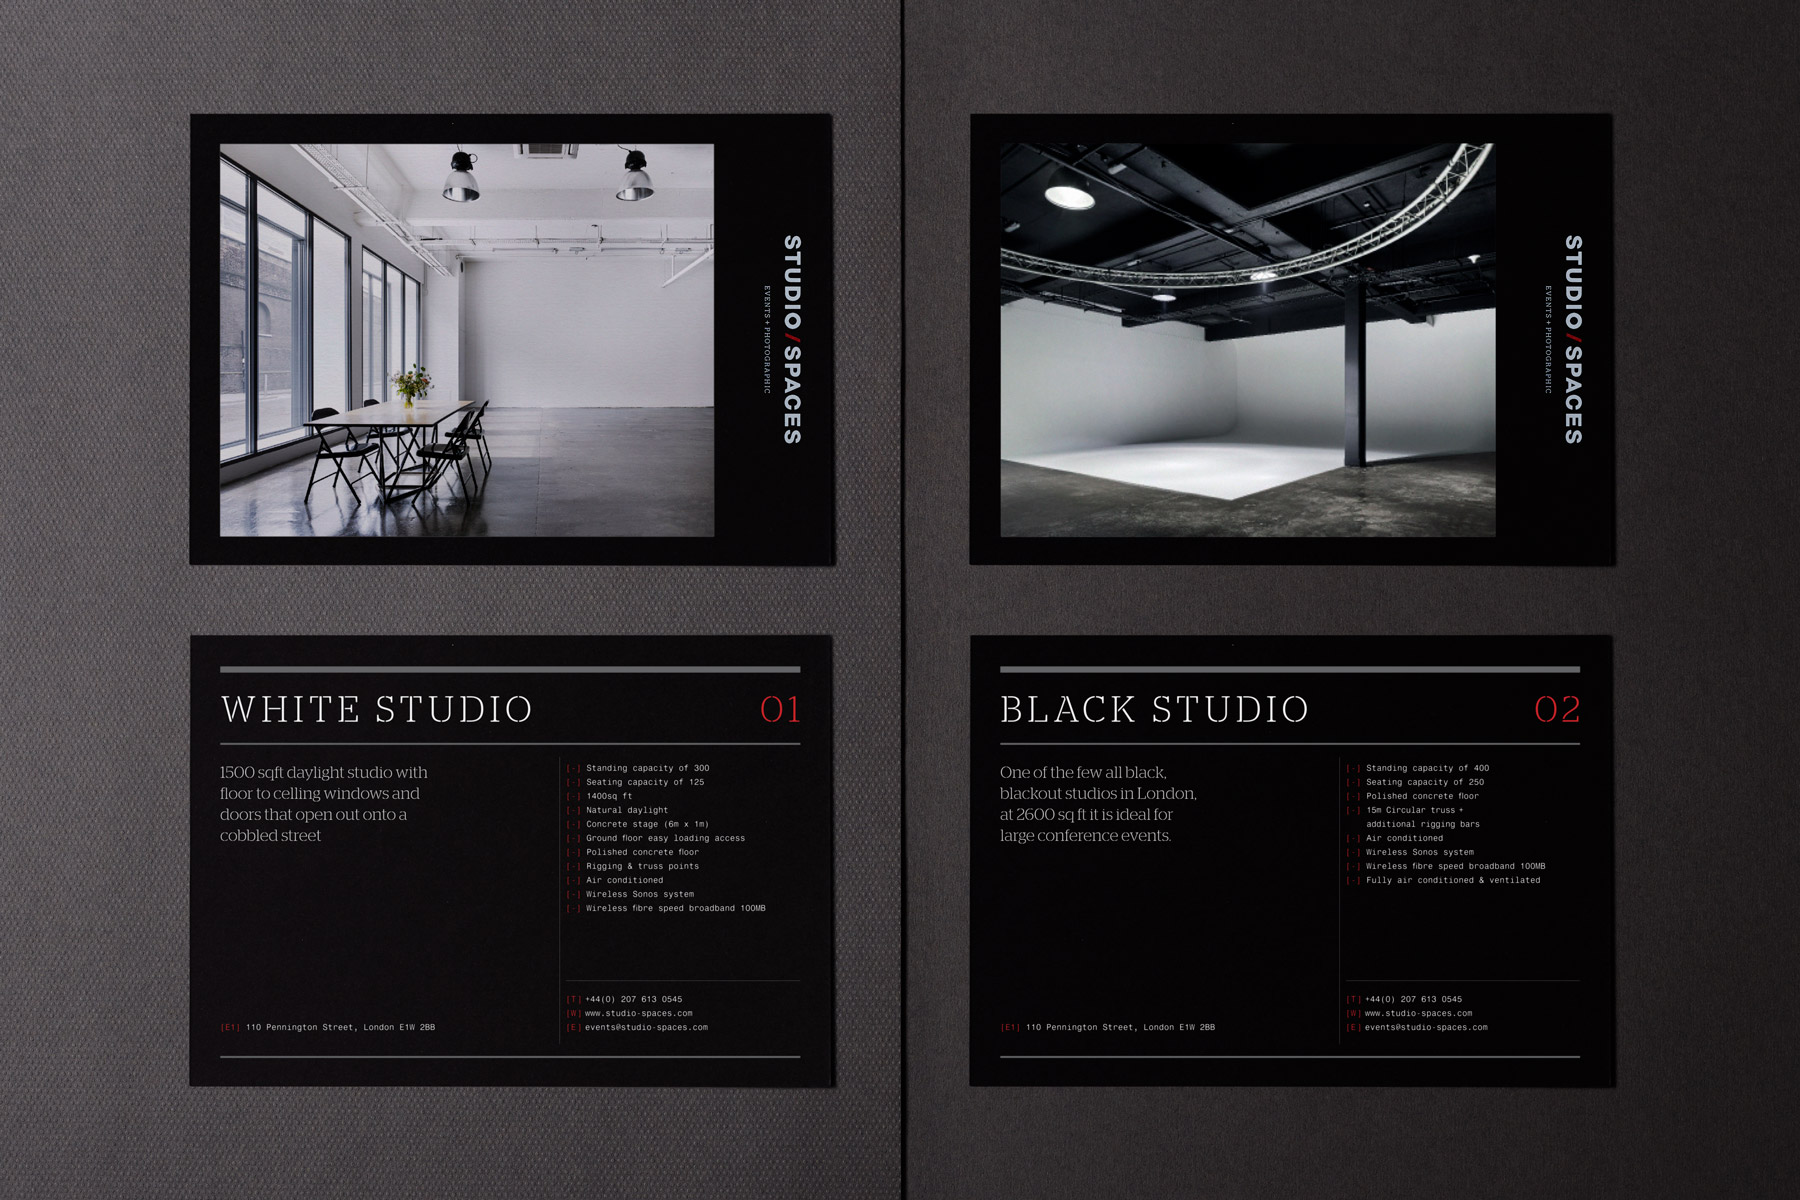 Studio Spaces – Studio AS-CC